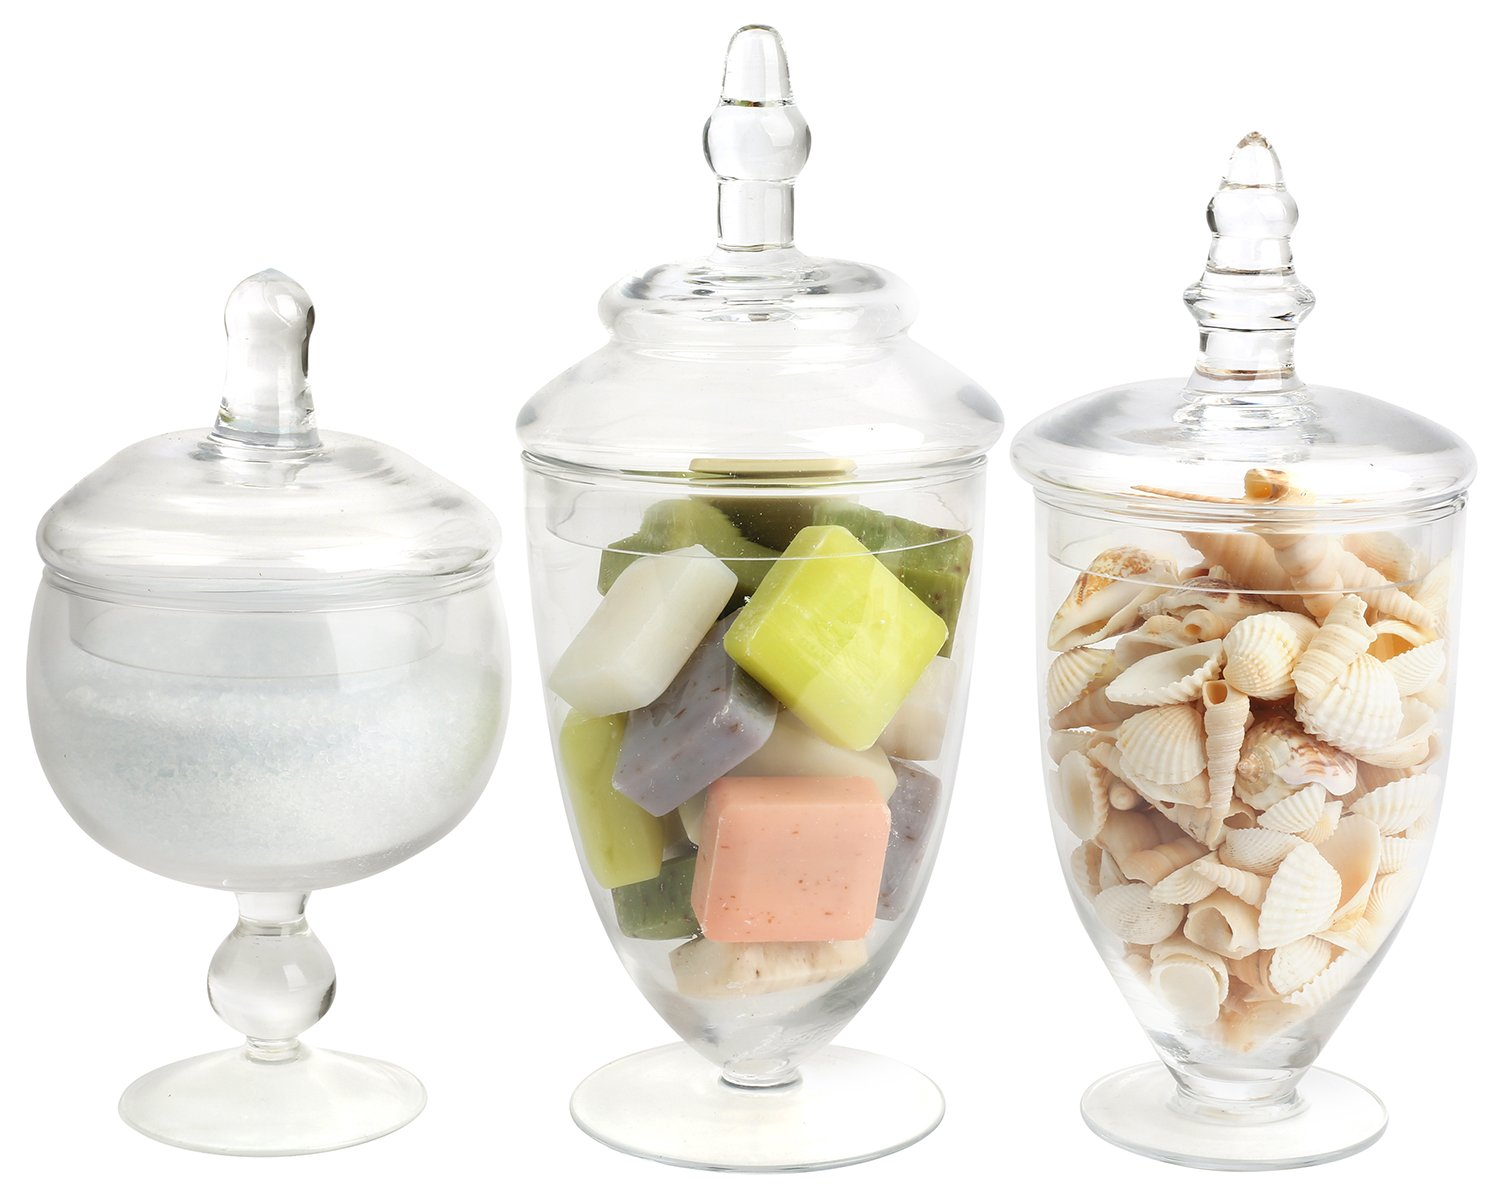 Mantello Decor Glass Apothecary Jars (Clear, Small, Set of 3) by Mantello